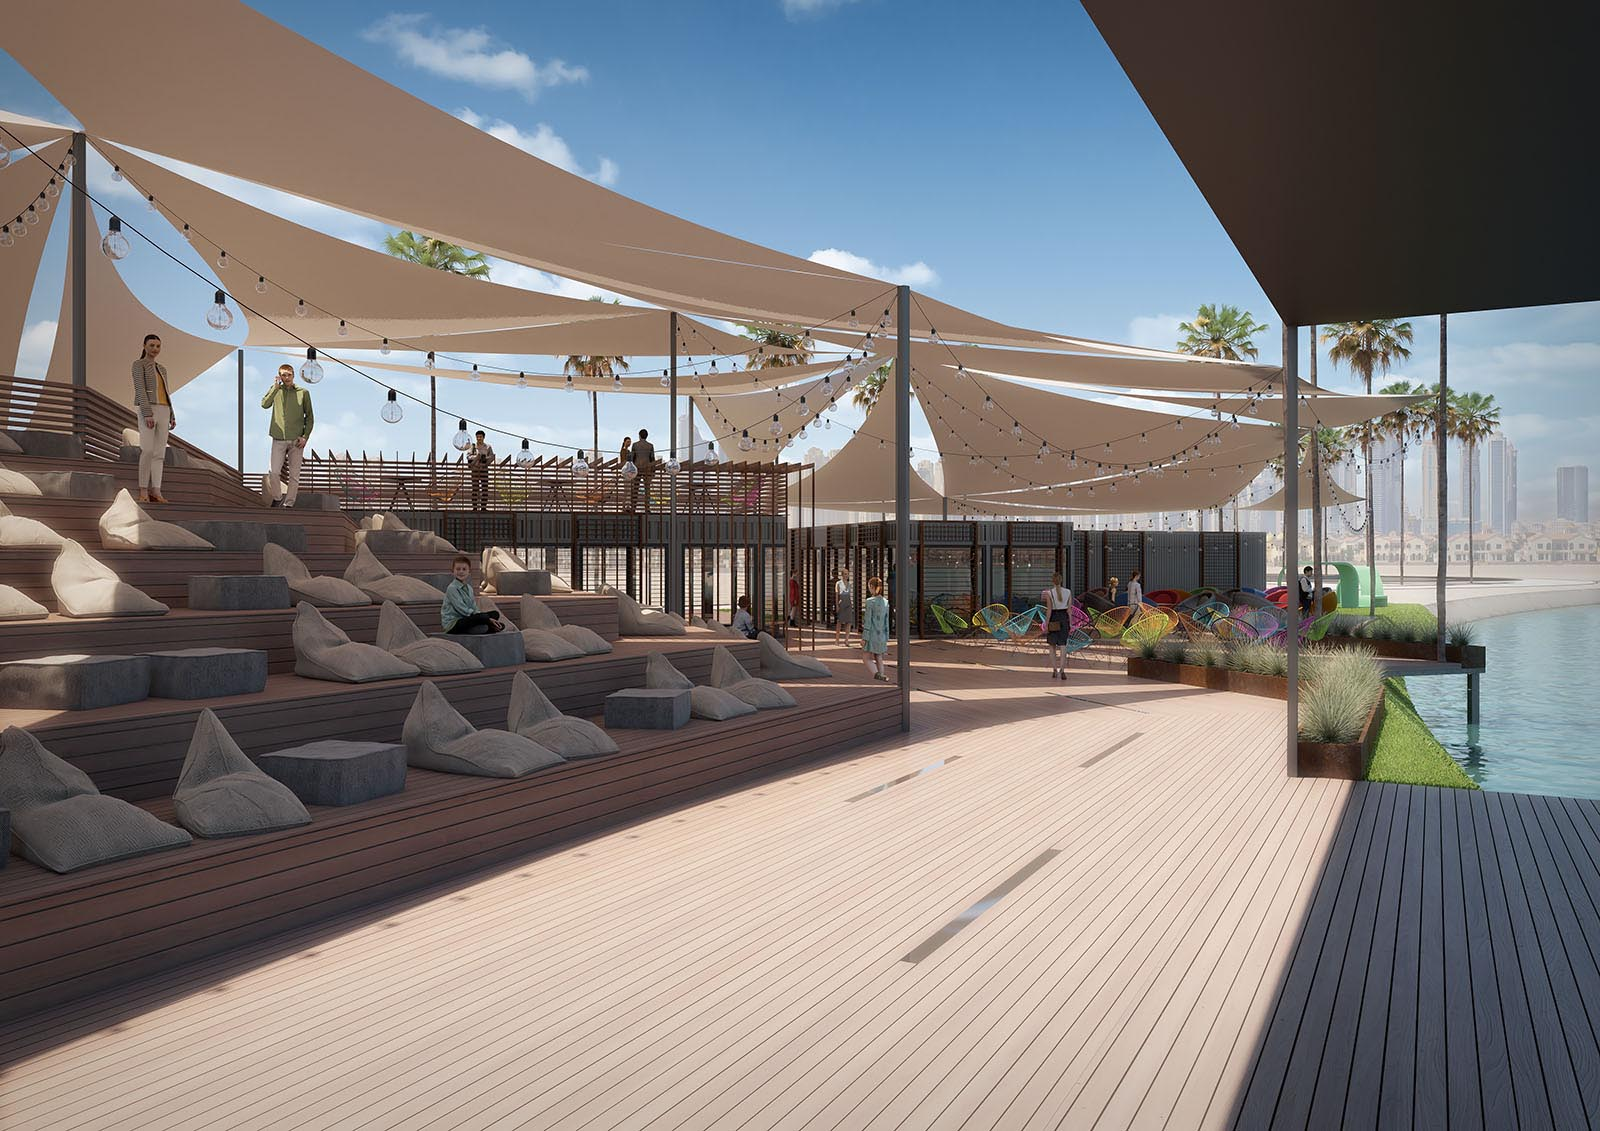 A project of a wake park in Dubai.